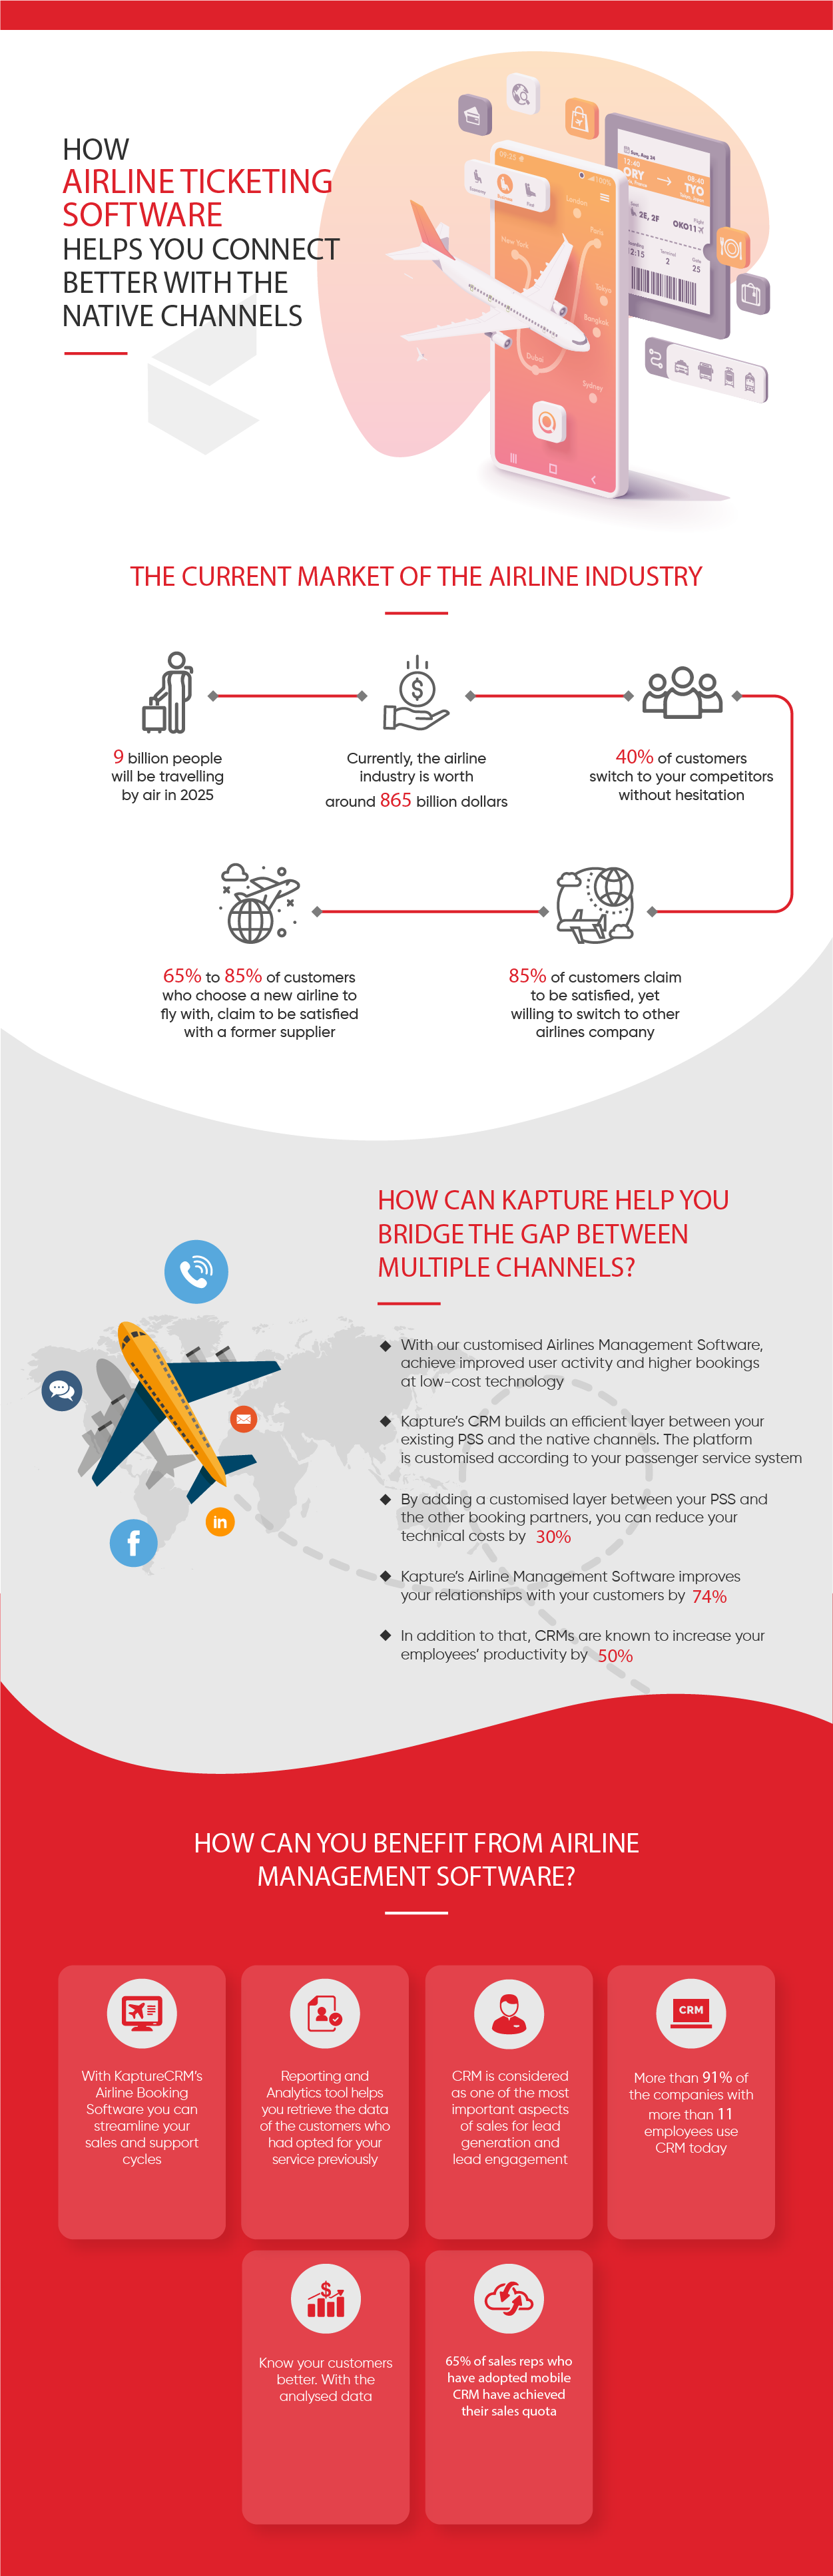 How Airline Ticketing Software Helps You Connect Better with the Native Channels